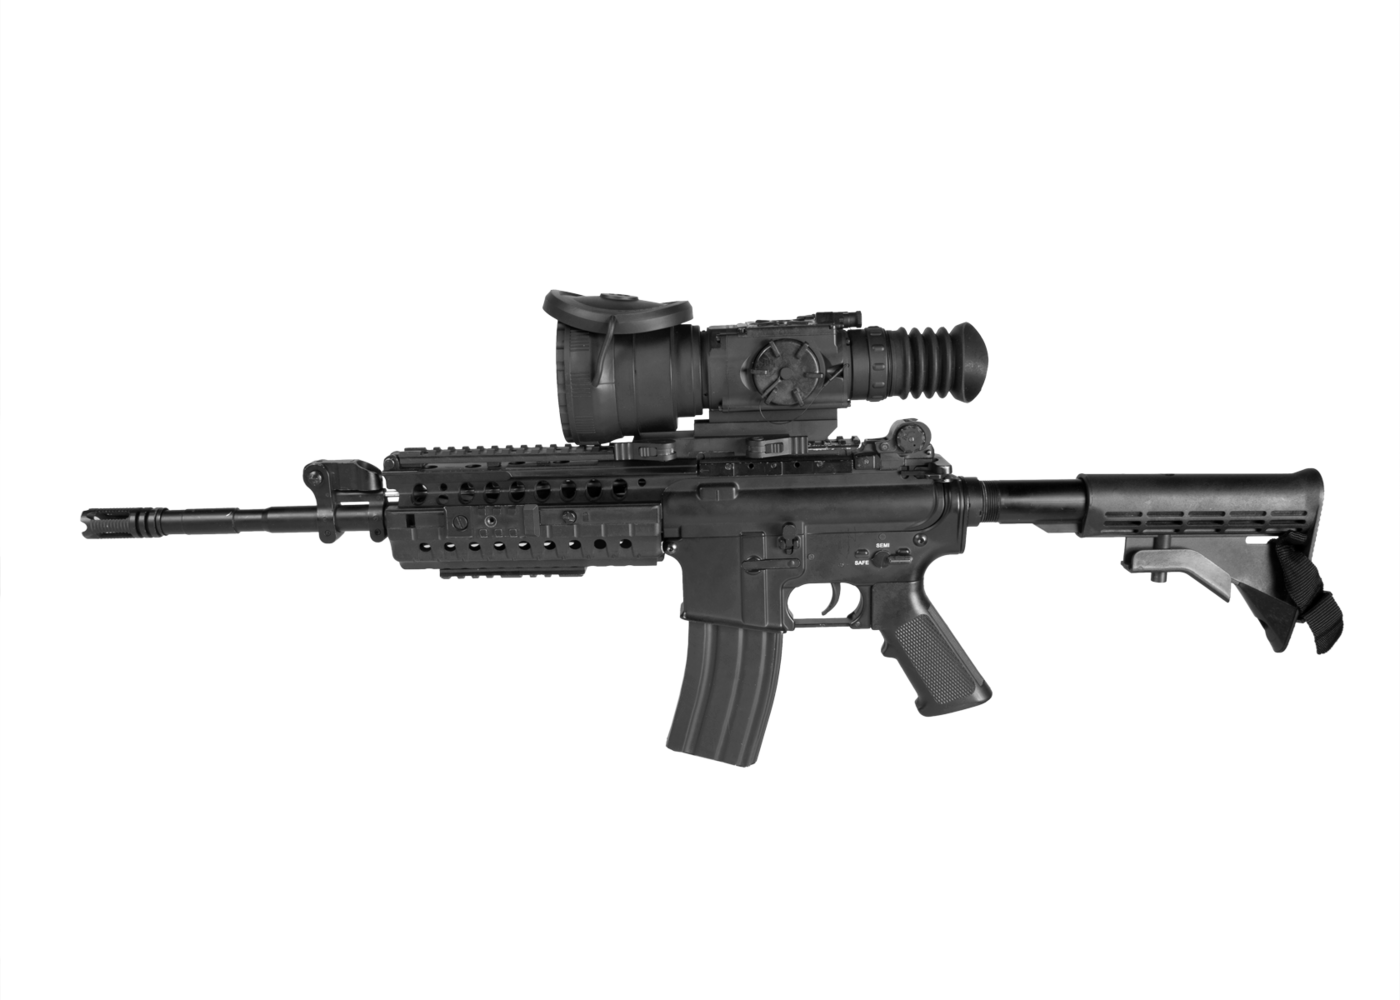 Weapon clip thermal rifle scope. Armasight zeus mm add